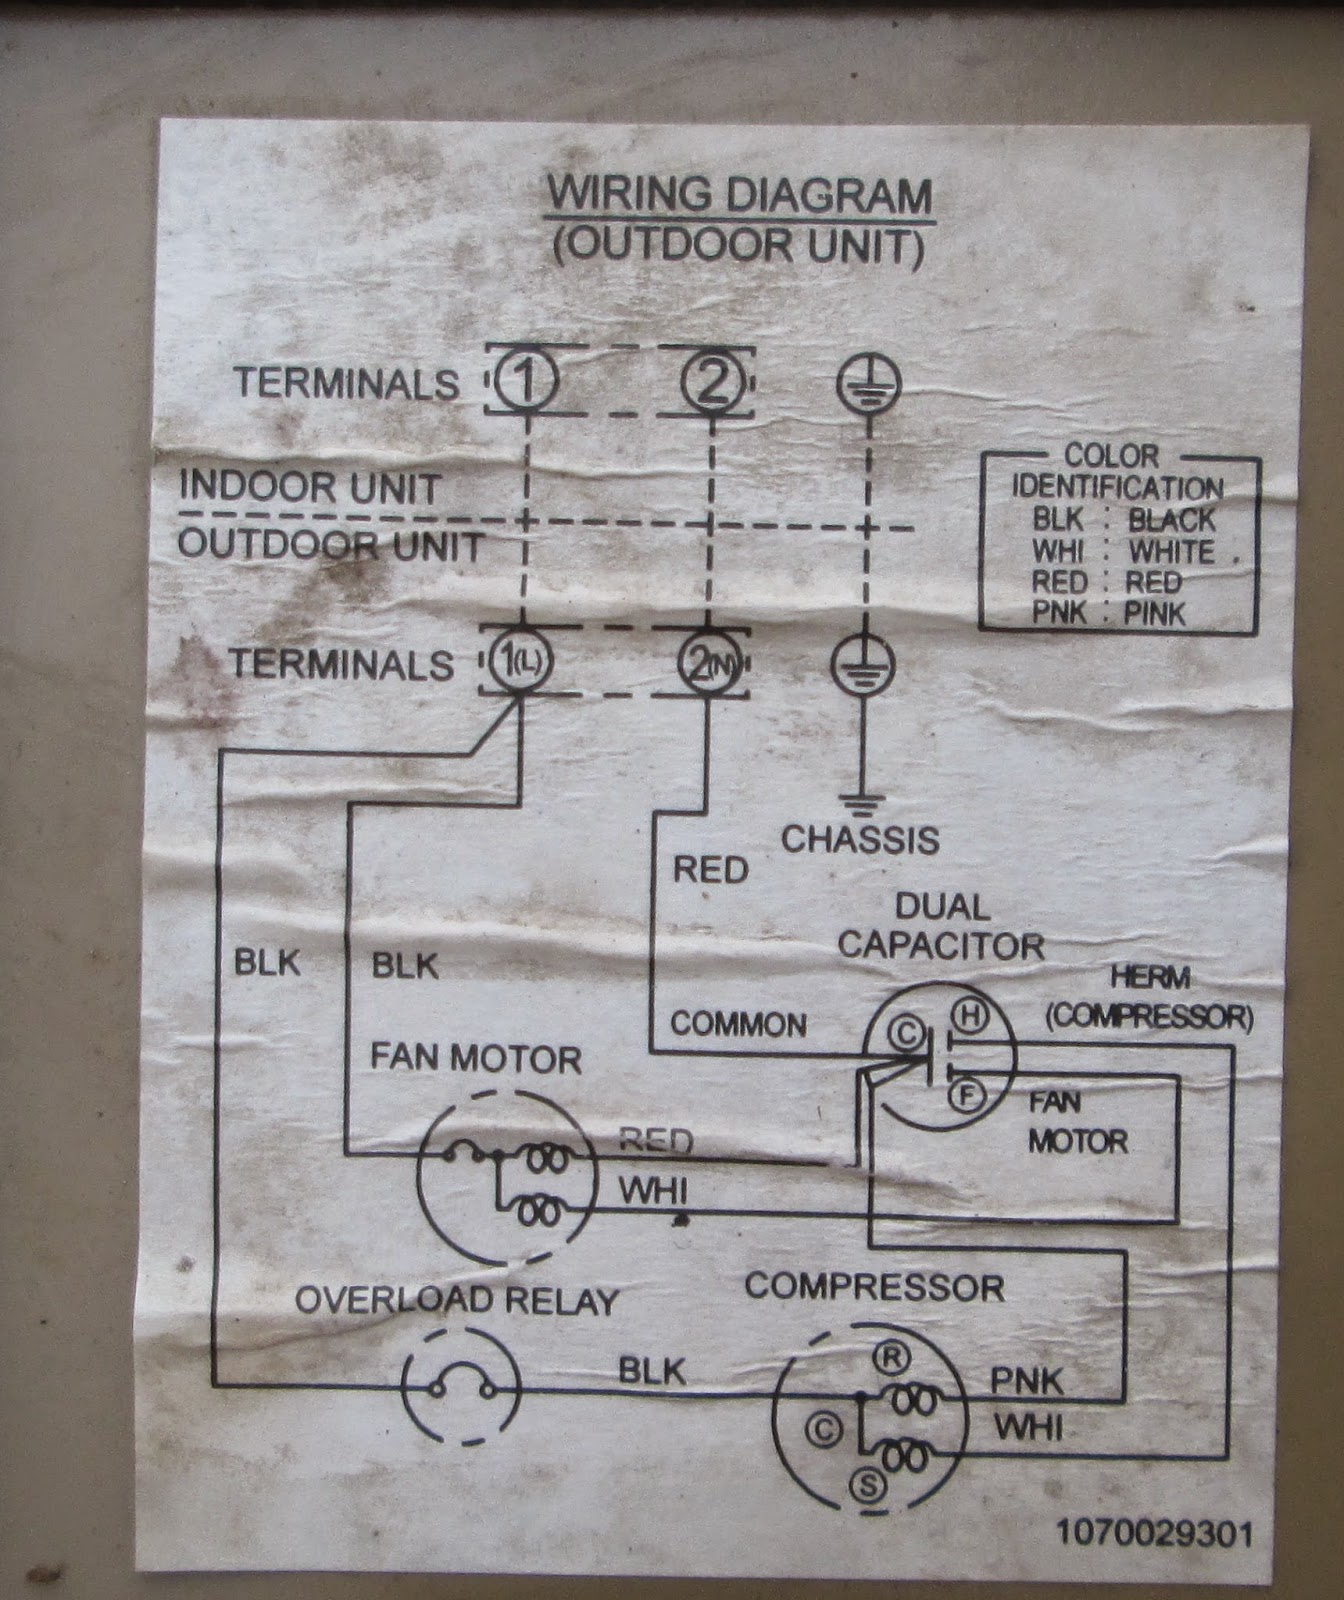 Wiring Diagram Kulkas Mitsubishi Libraries 2 Pintu Library